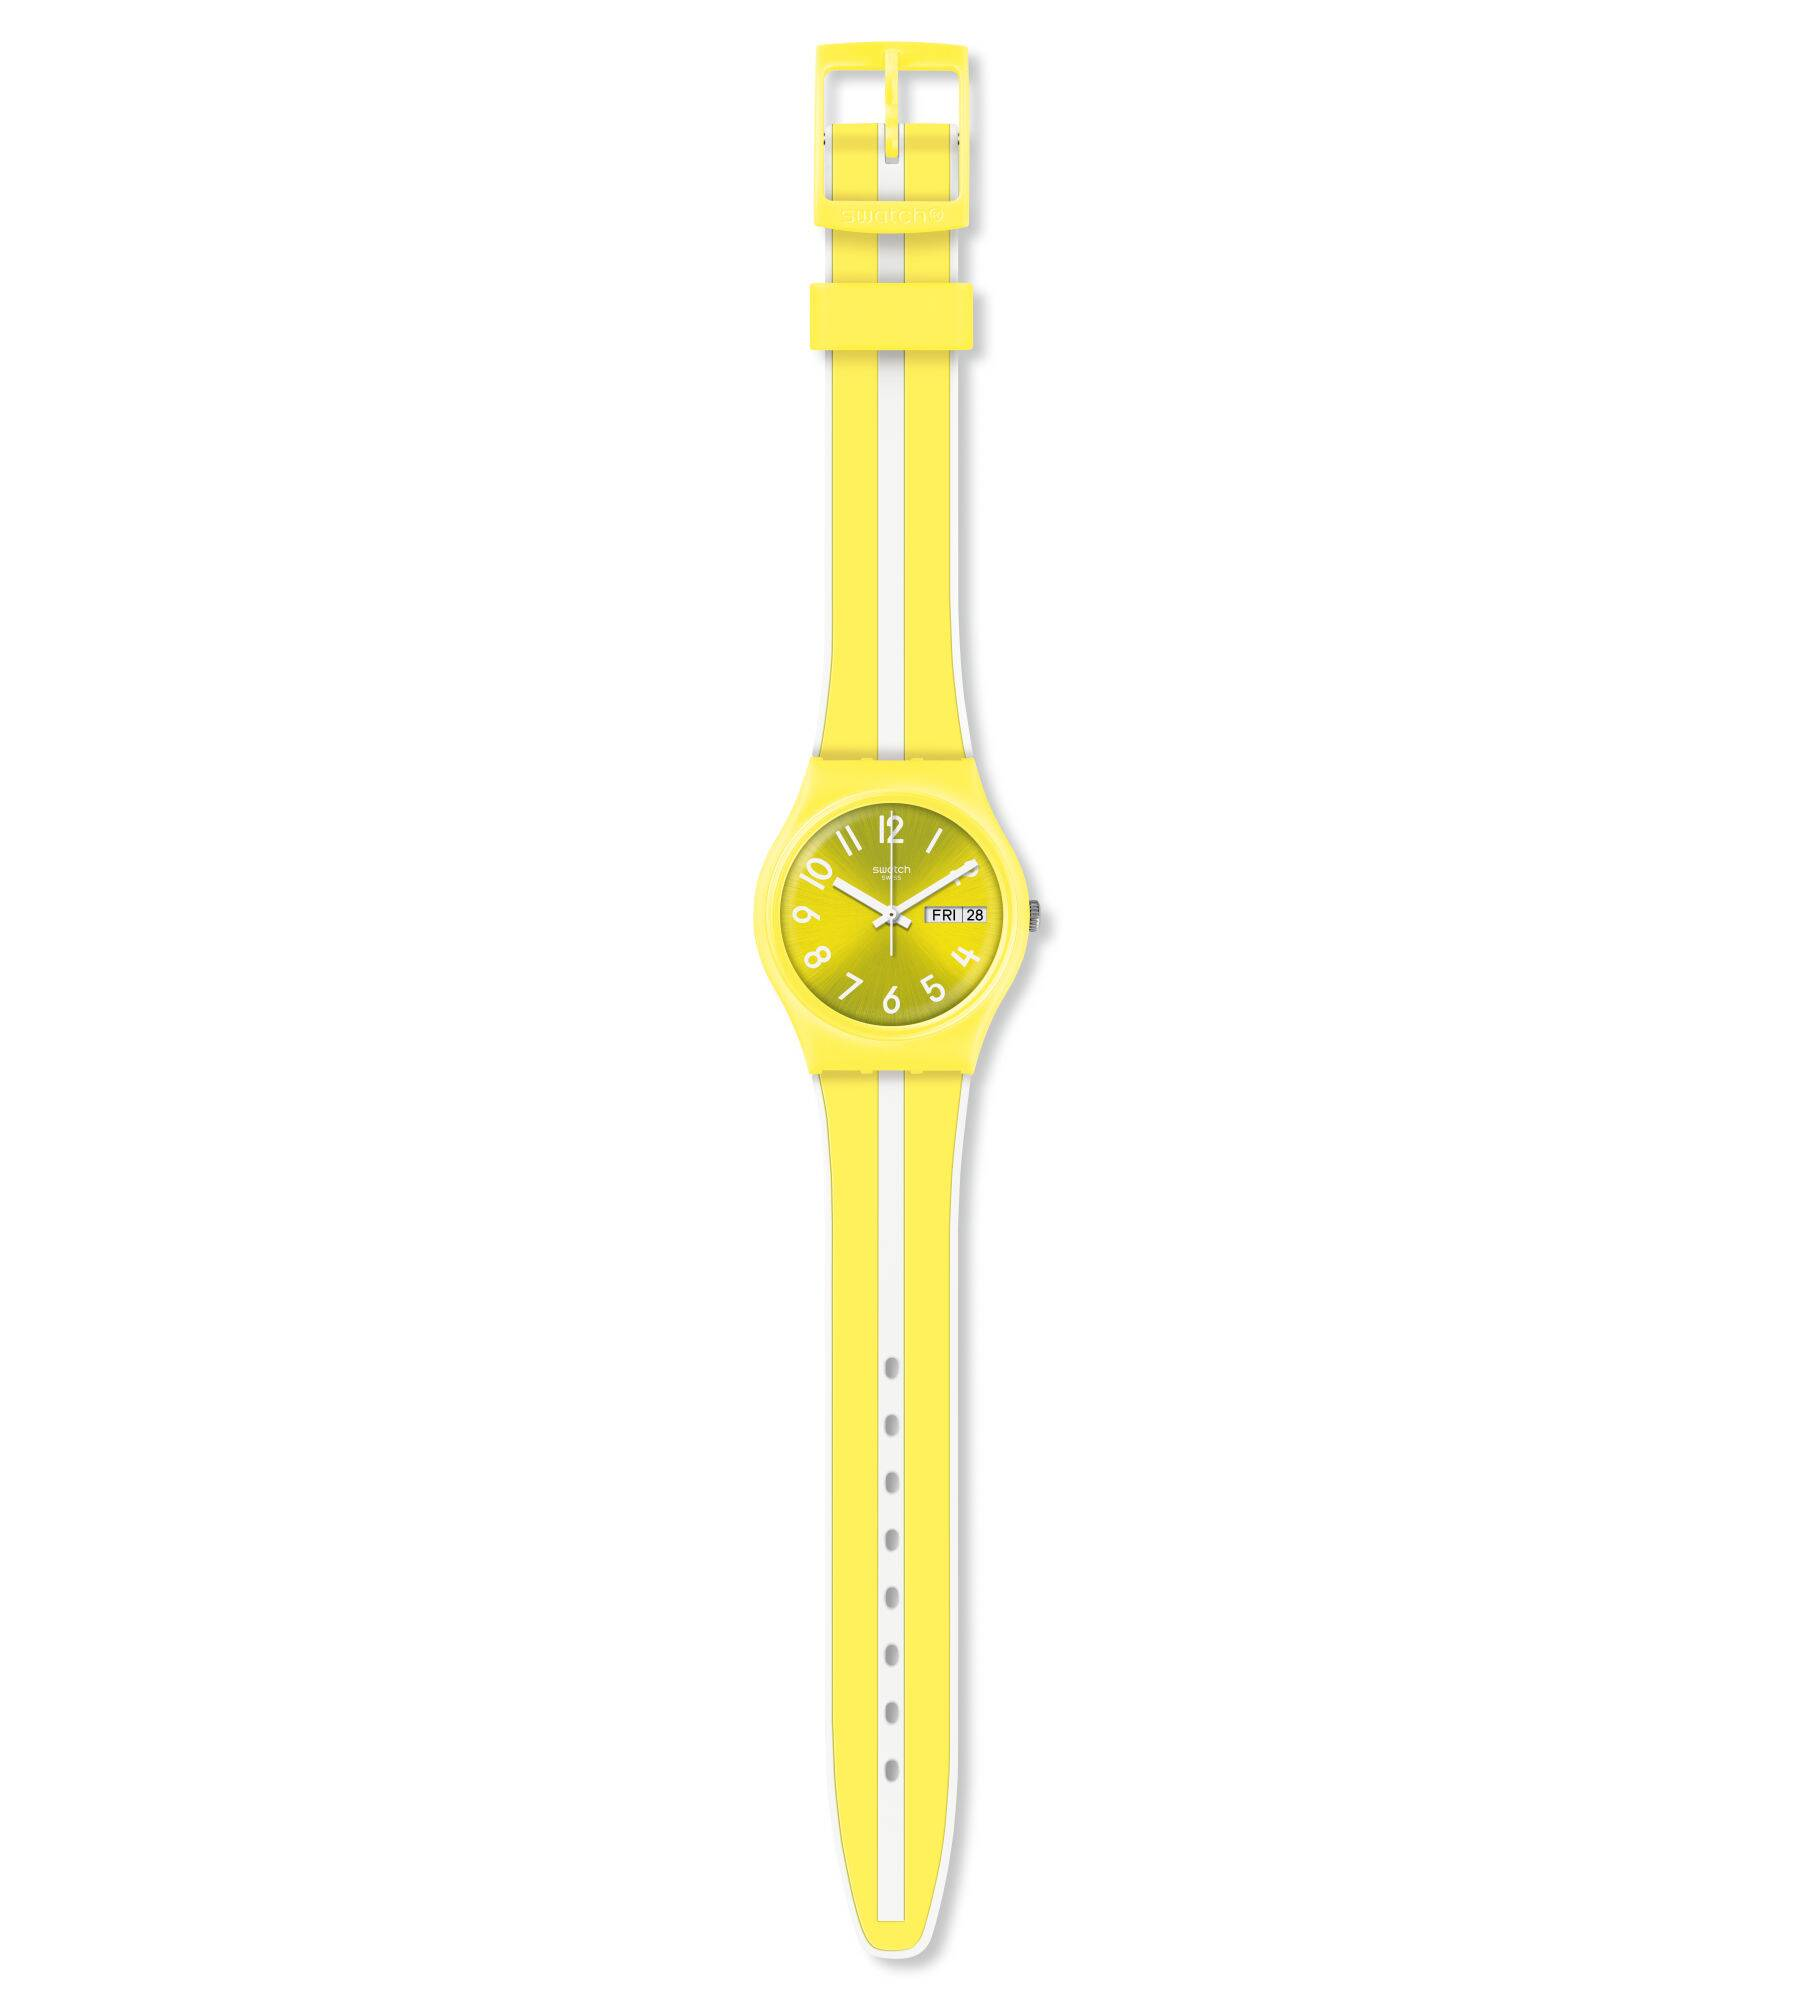 SWATCH MAN WATCH LEMONCELLO REF. GJ702